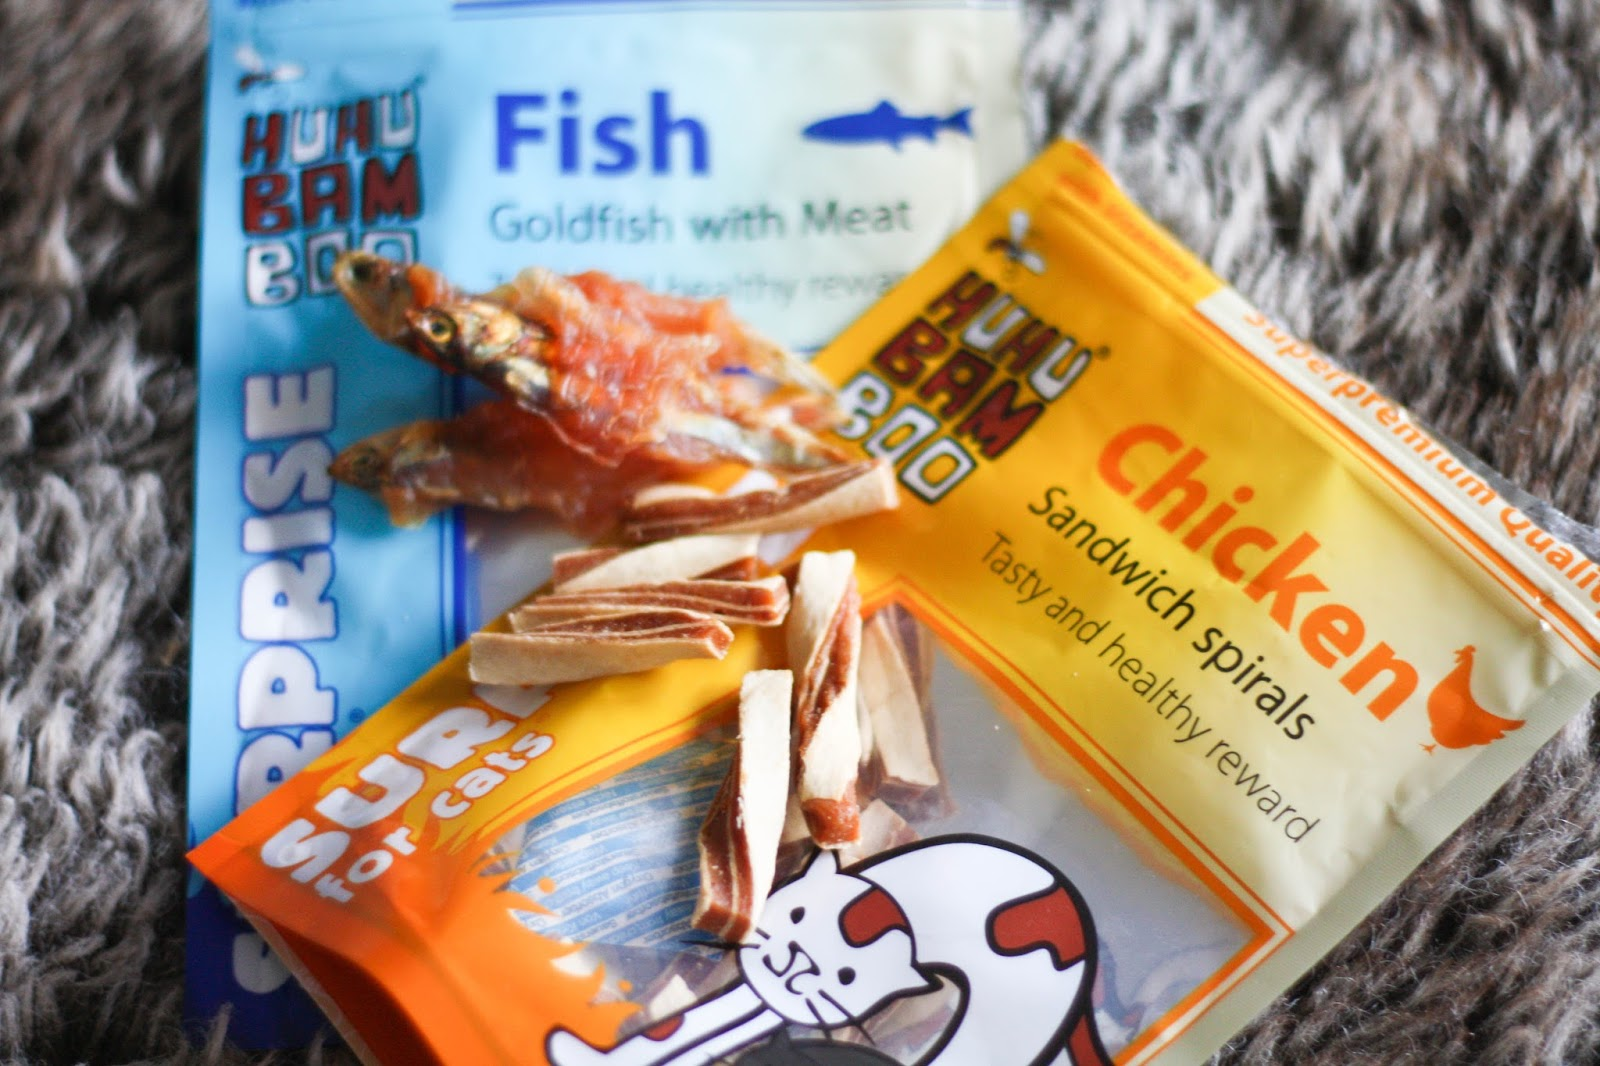 Cats off the Carbs: Goldfish with meat & Sandwich spirals